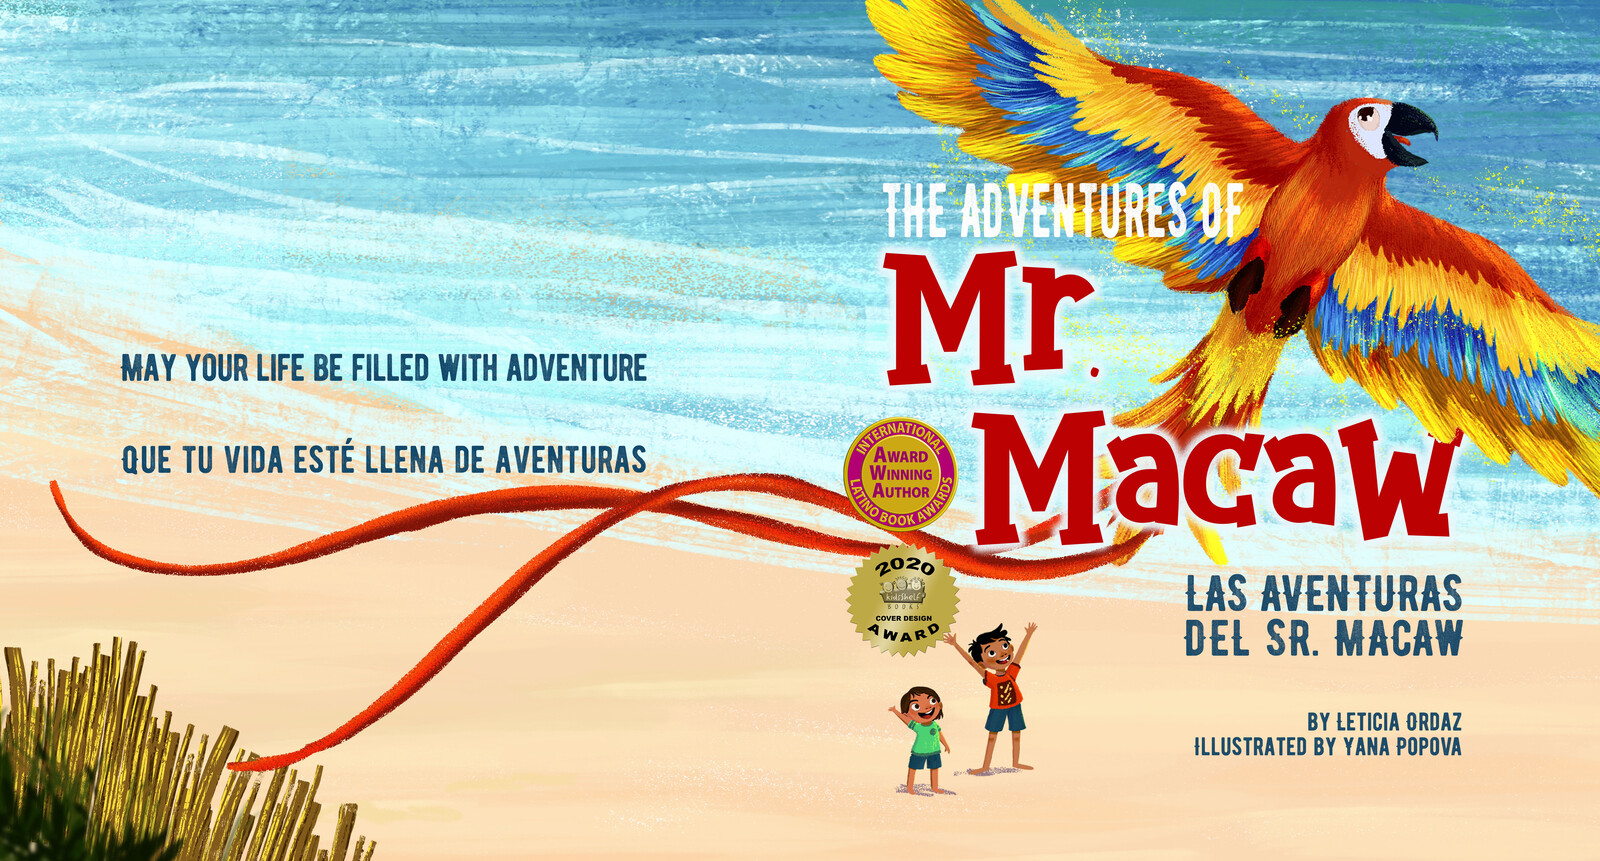 The Adventures of Mr.Macaw